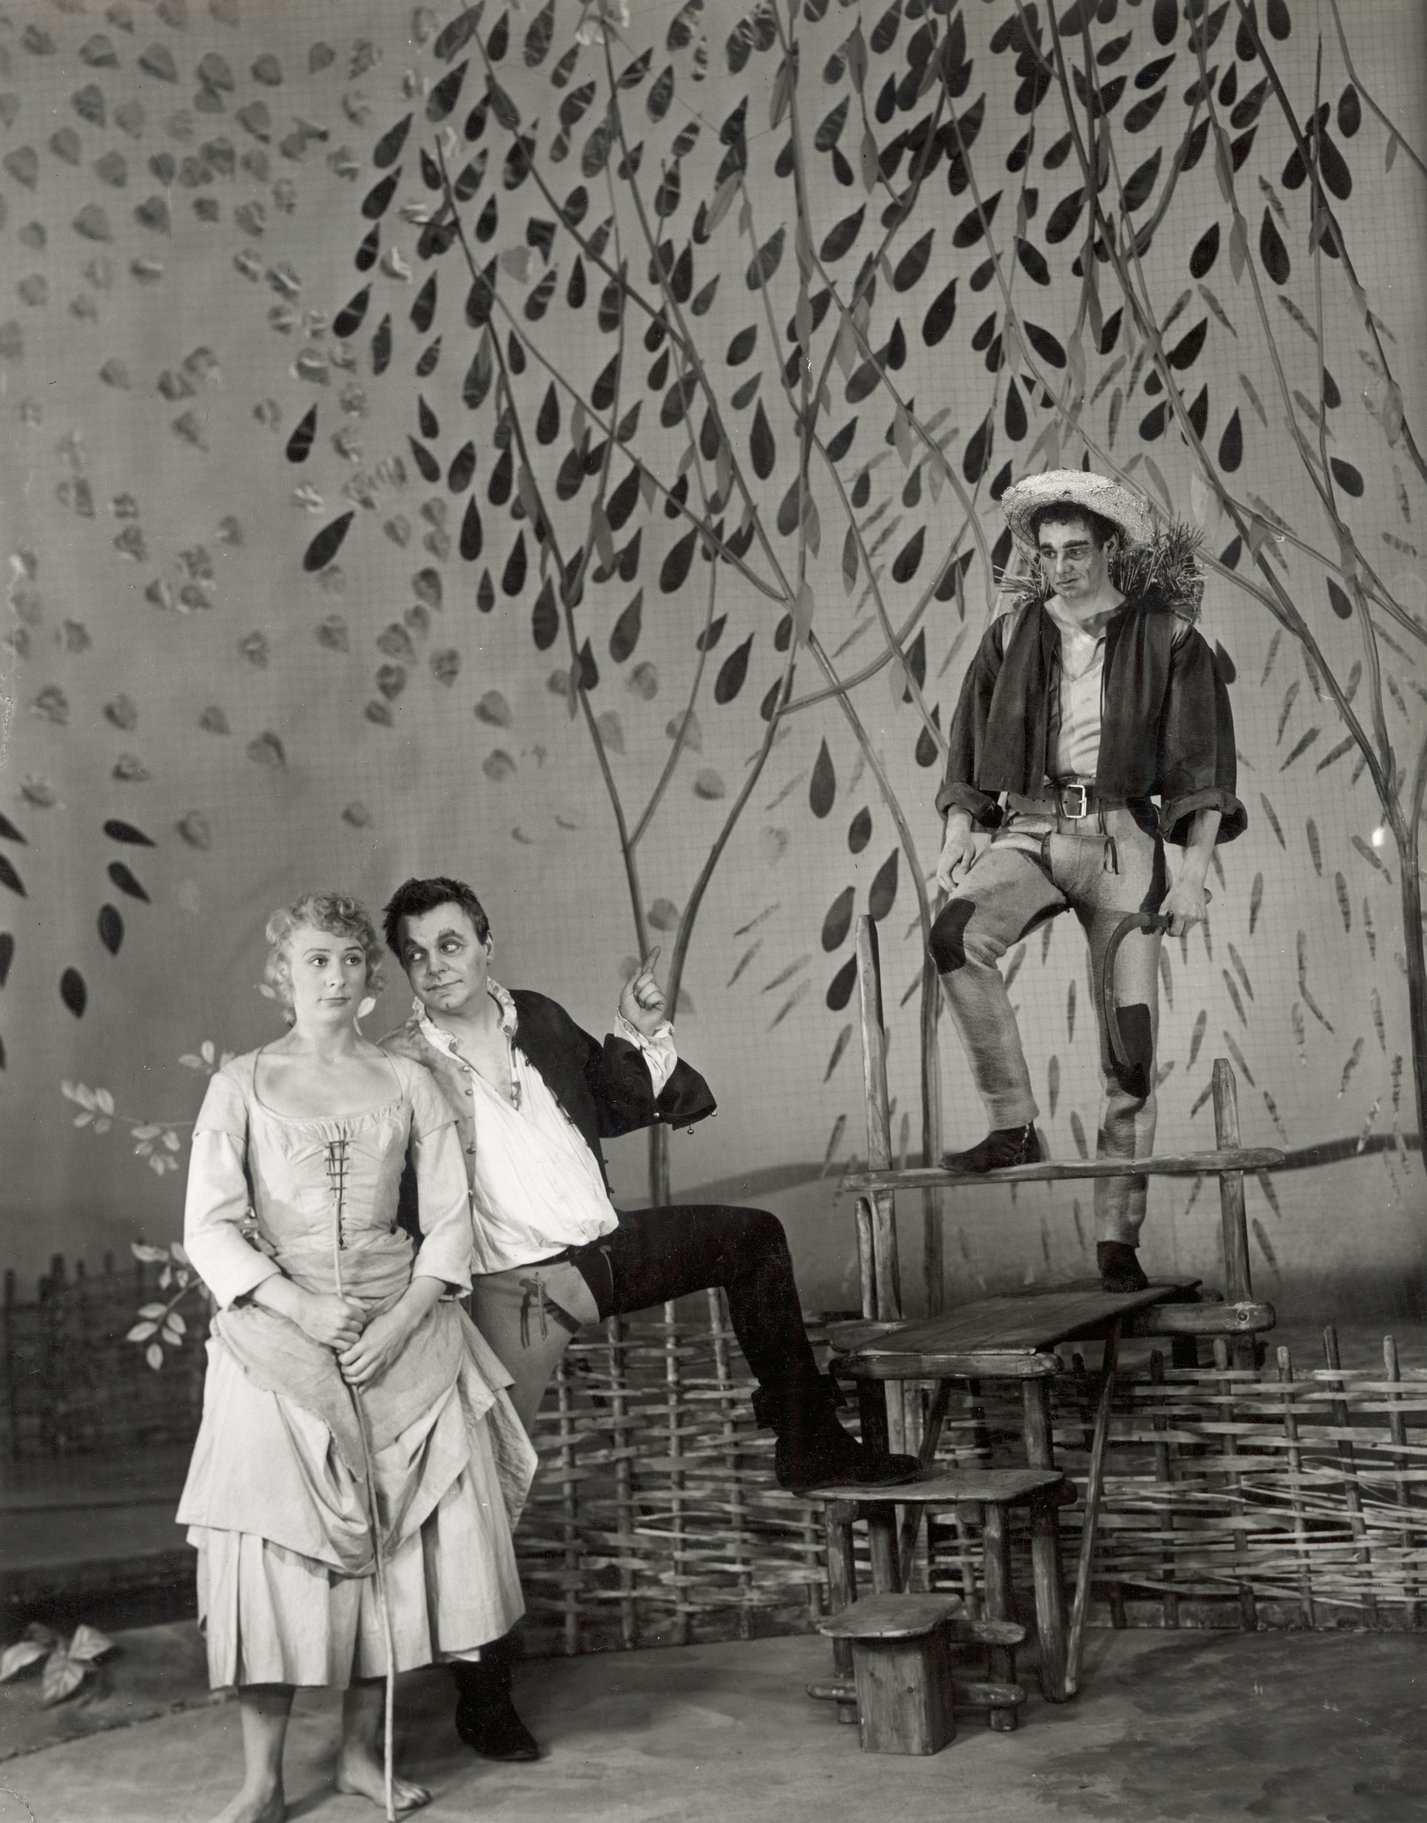 A man and woman under a tree.